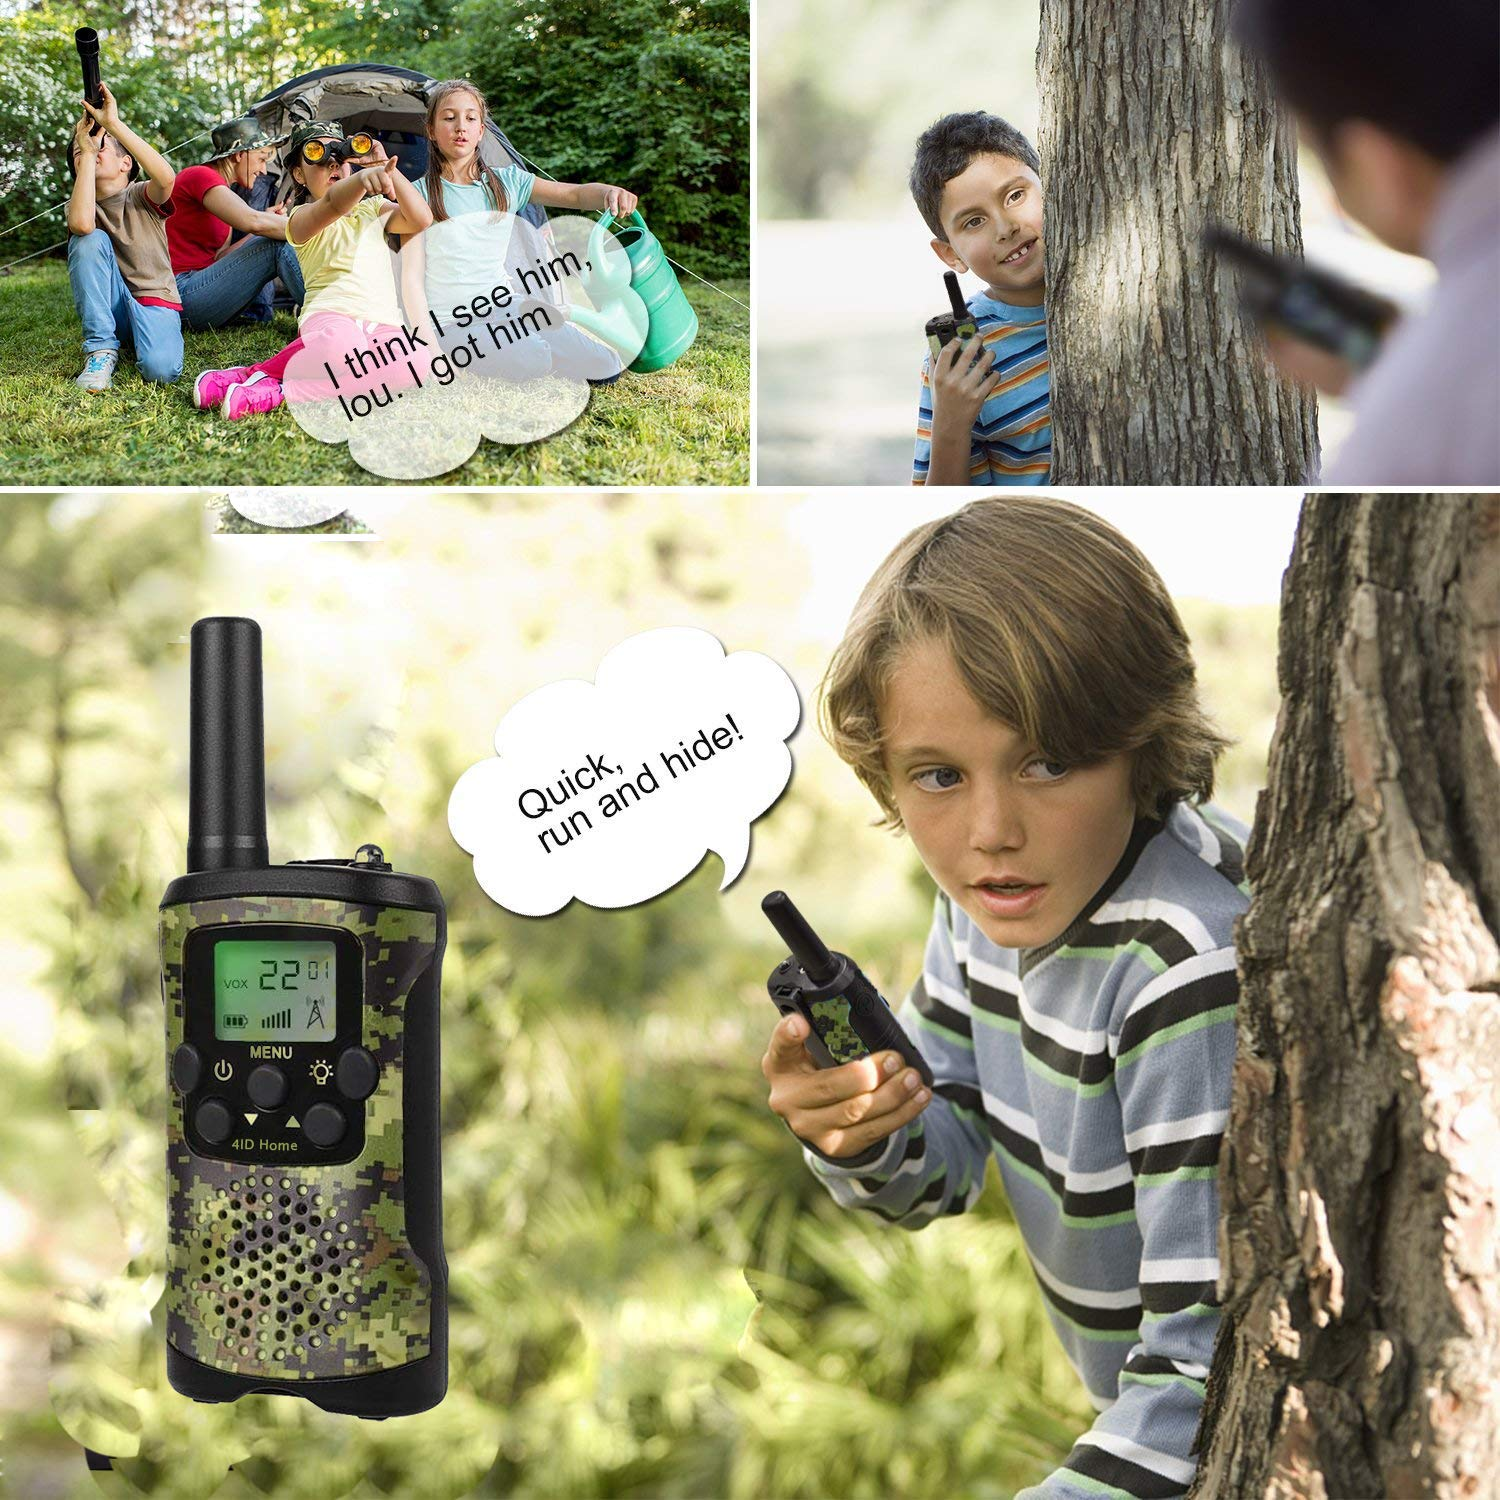 Ideahome Kids walkie talkies Binoculars Toys - Kids' Binocular 2 Way radios walkie Talkie 3 Miles Long Range walky Talky Children Outdoor Toys Best Gifts for Boys and Girls (camo) by Ideahome (Image #5)